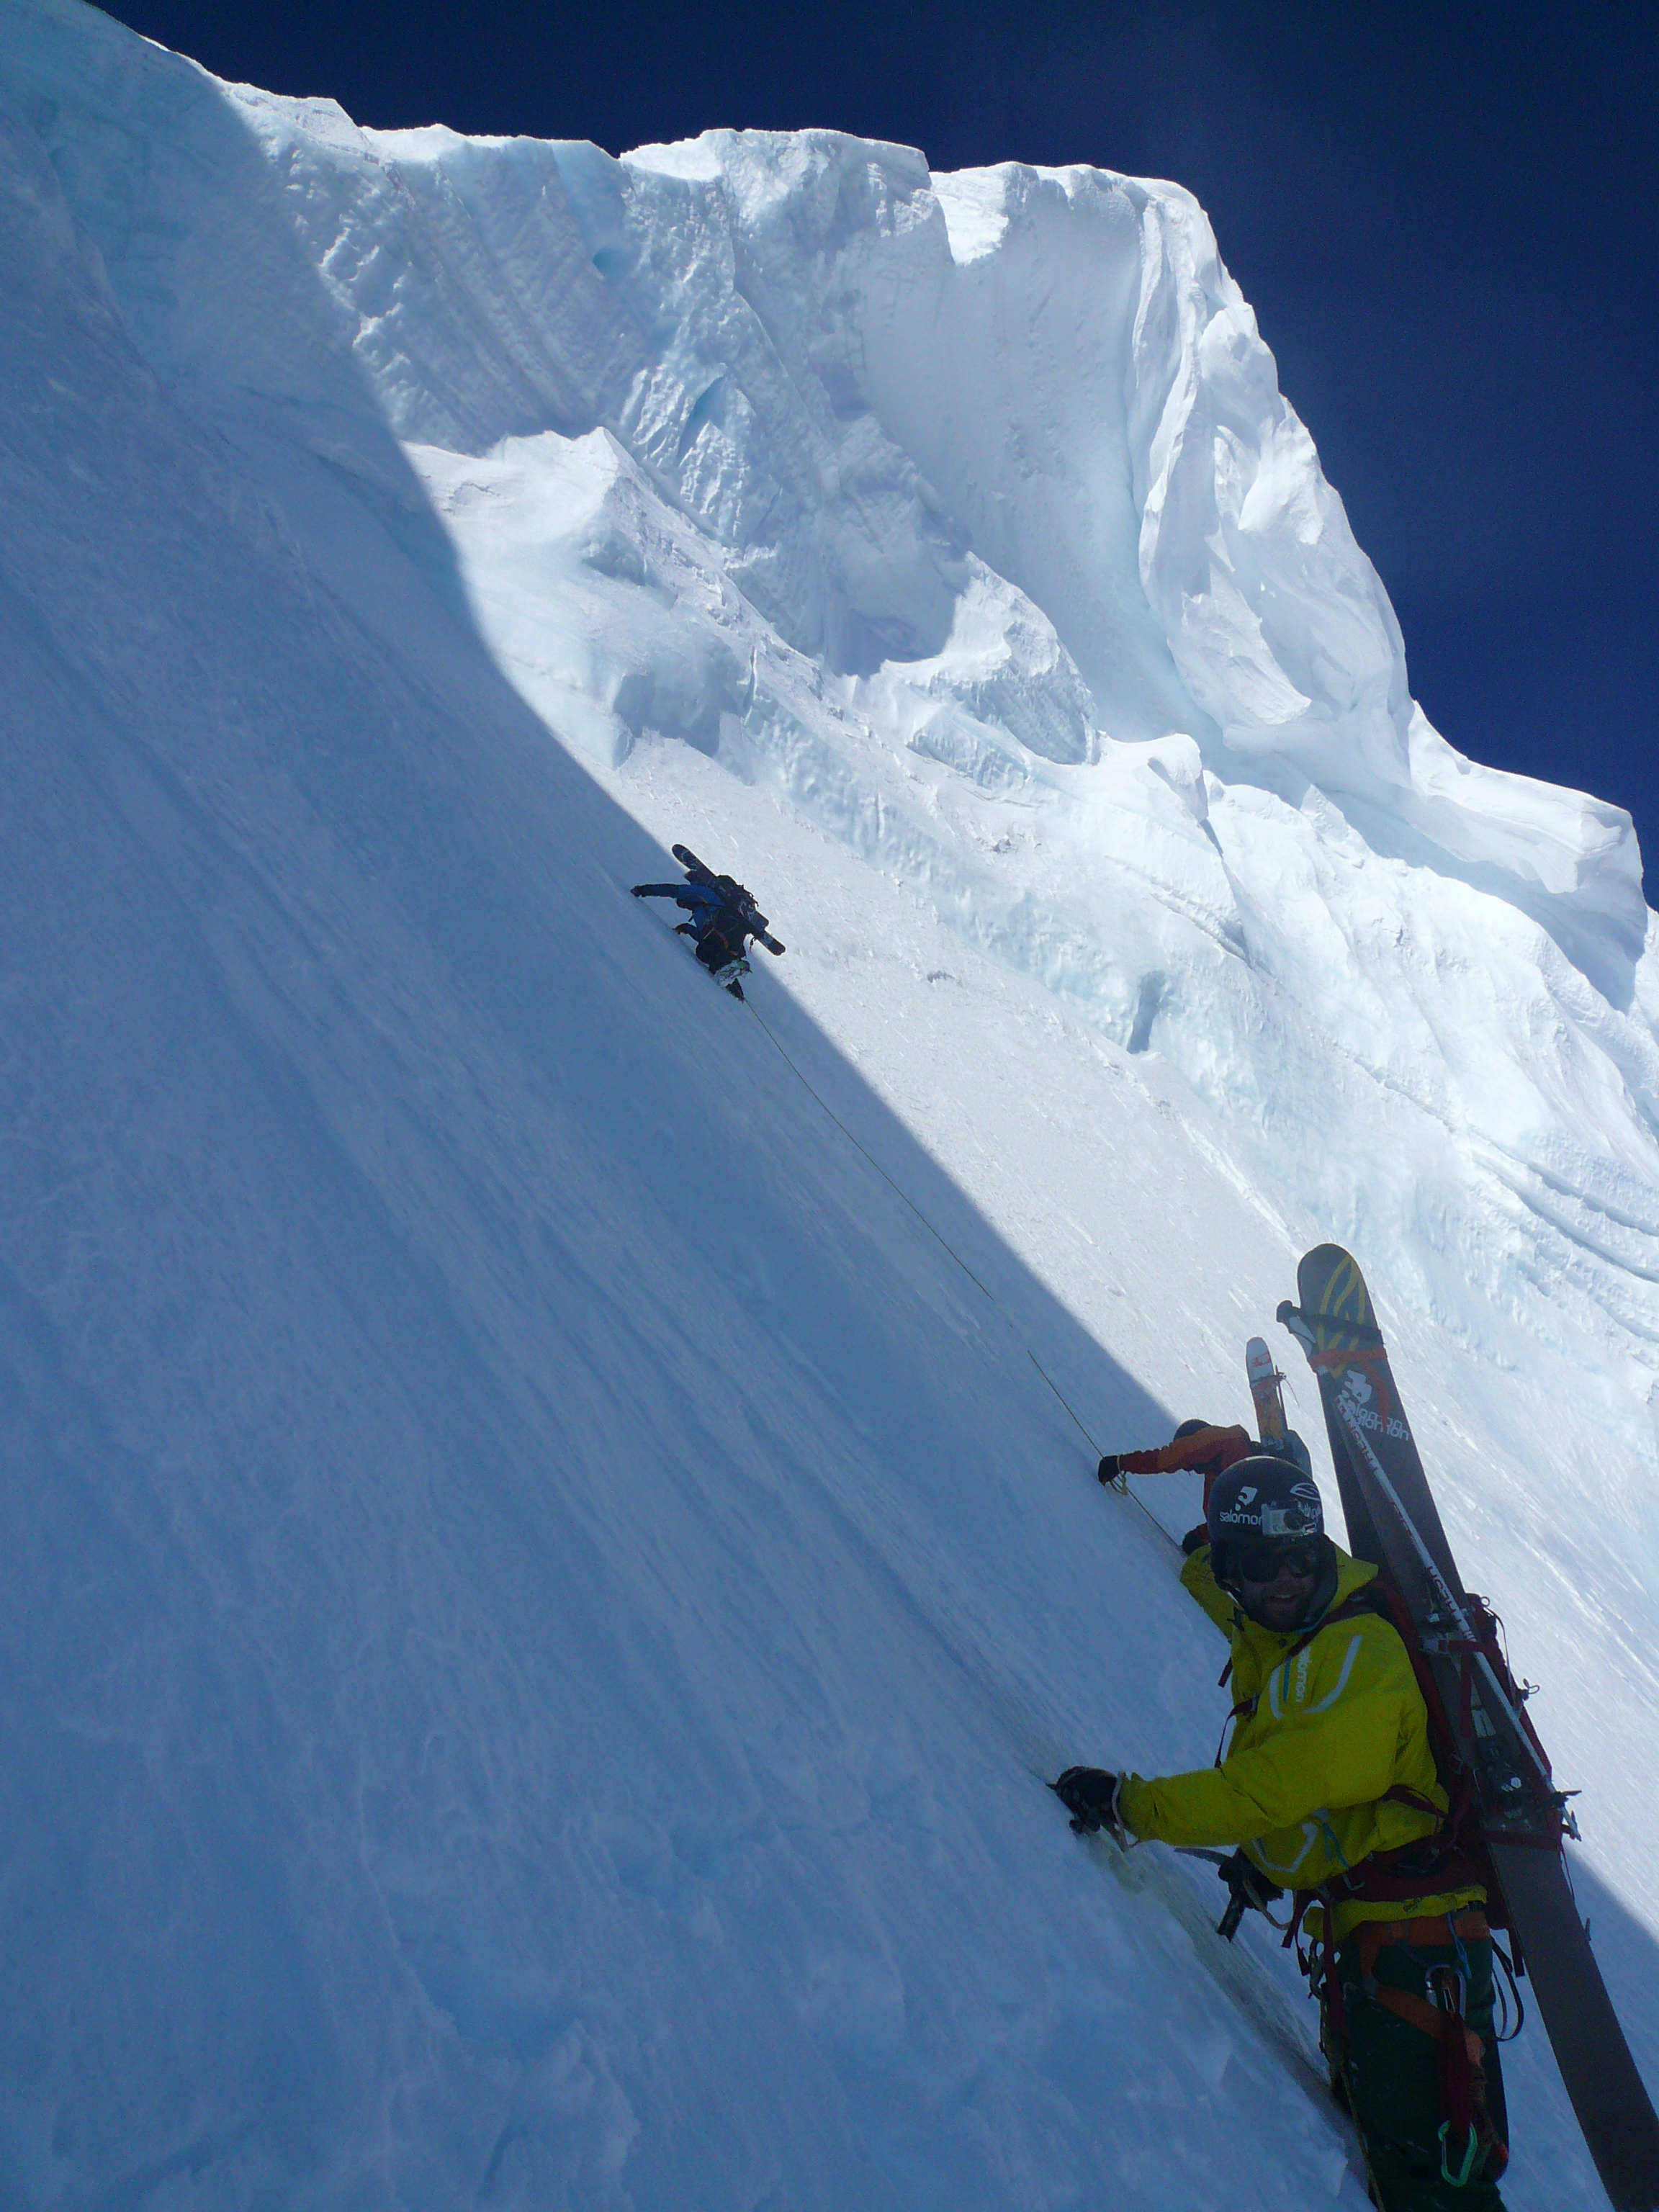 Chris Rubens, Eric Hjorleifson, Martin Lefebvre nearing the top of the North Face.